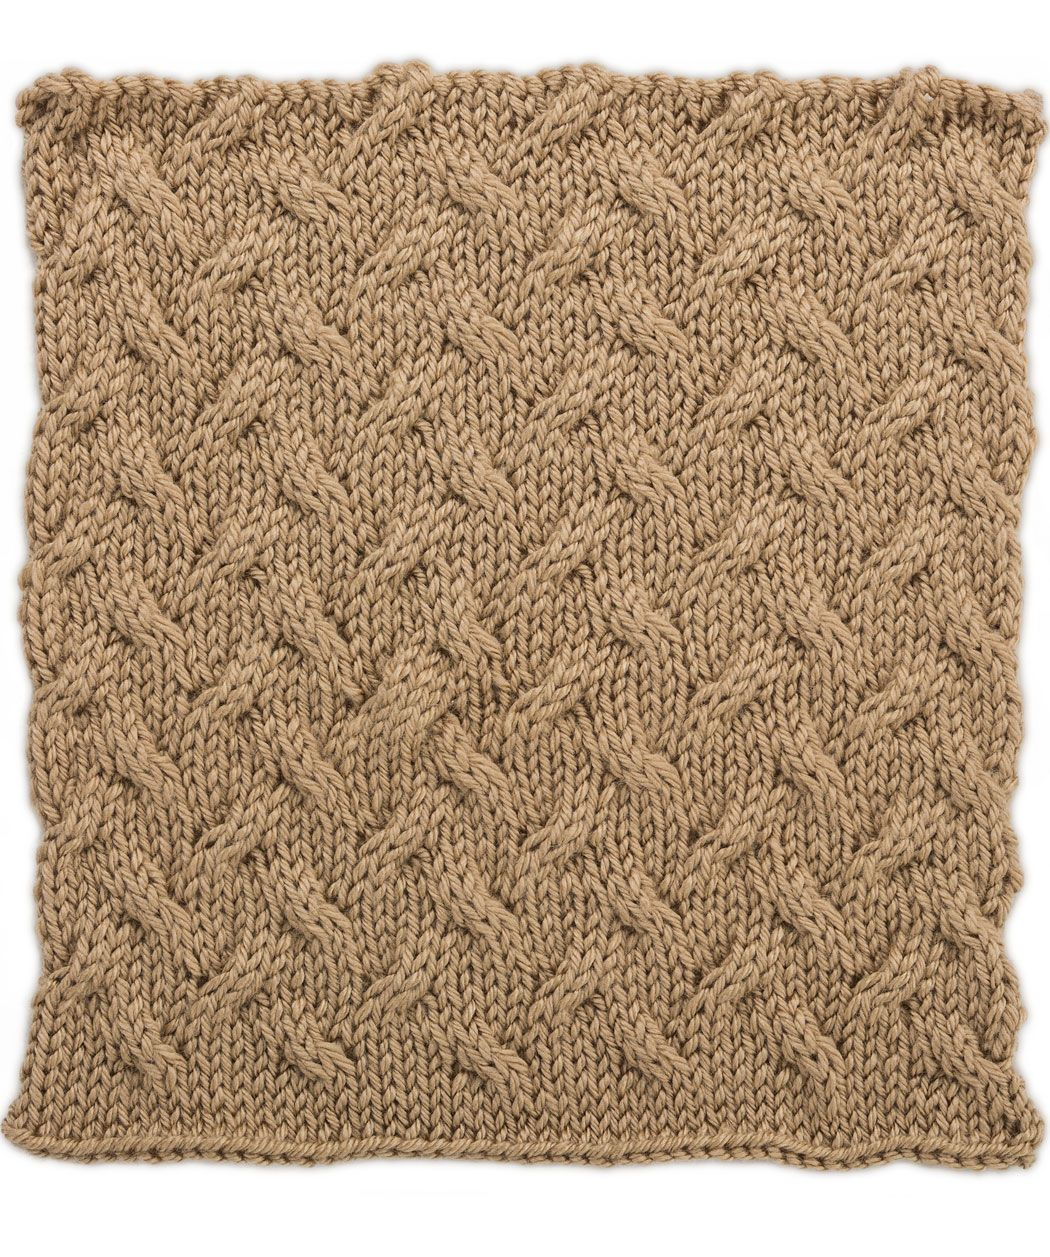 Knitting Bias Stockinette : Stockinette cables square for knit your afghan